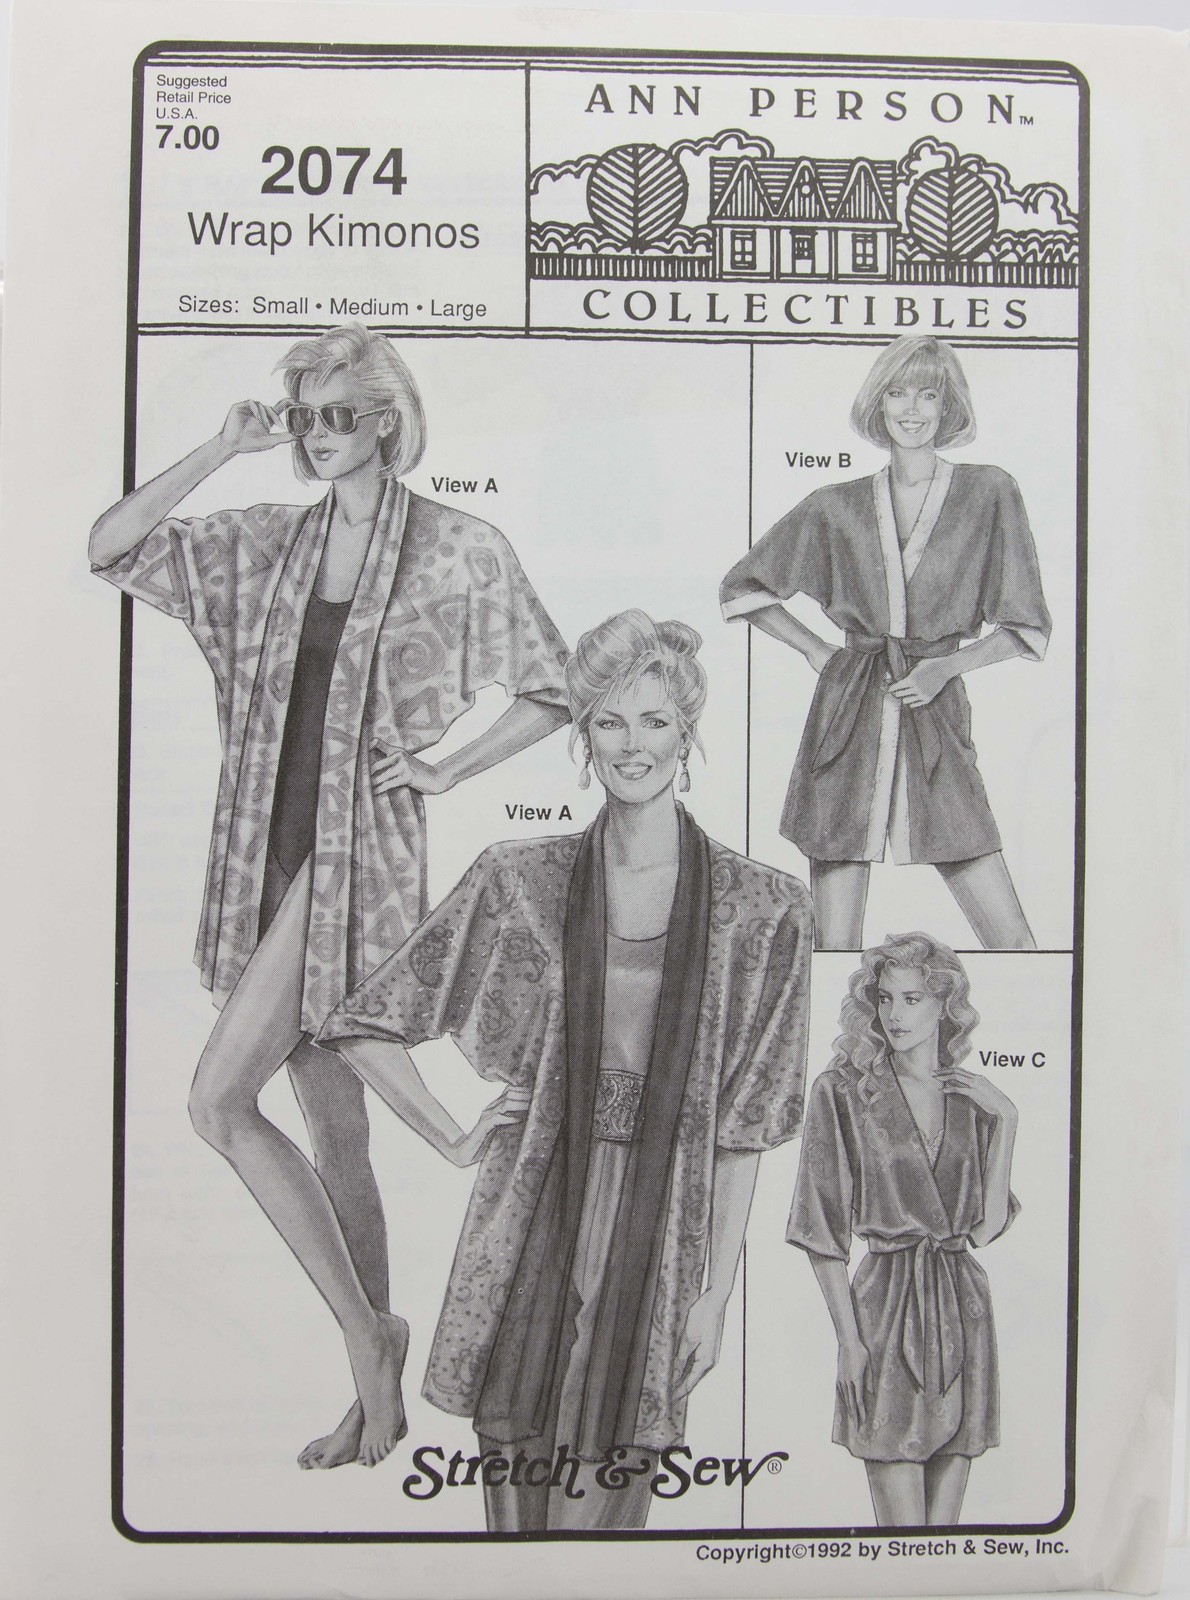 Stretch & Sew - Ann Person Collectibles #2074 Wrap Kimonos